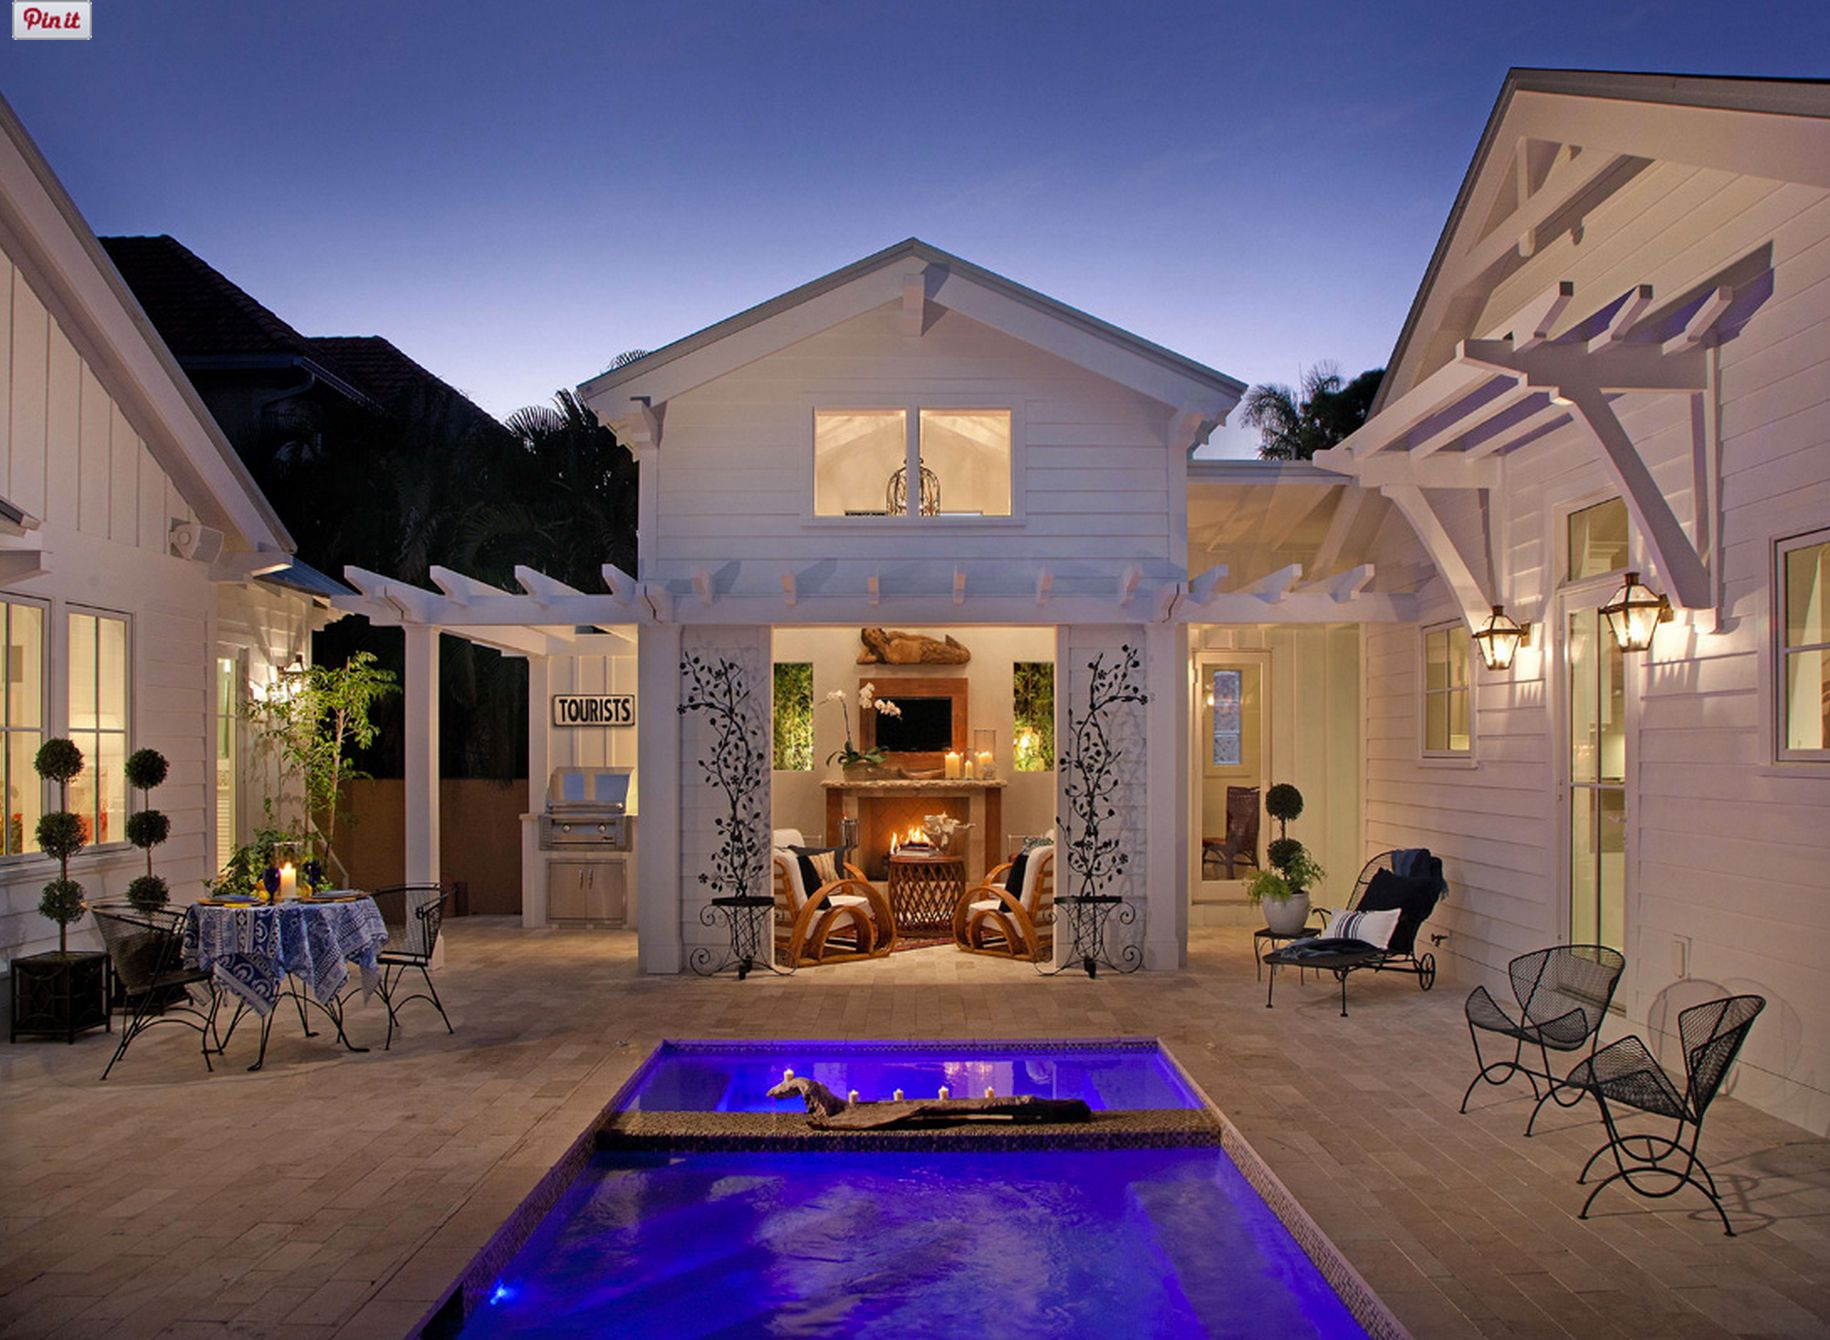 I need a house and guesthouse with a common courtyard/pool.